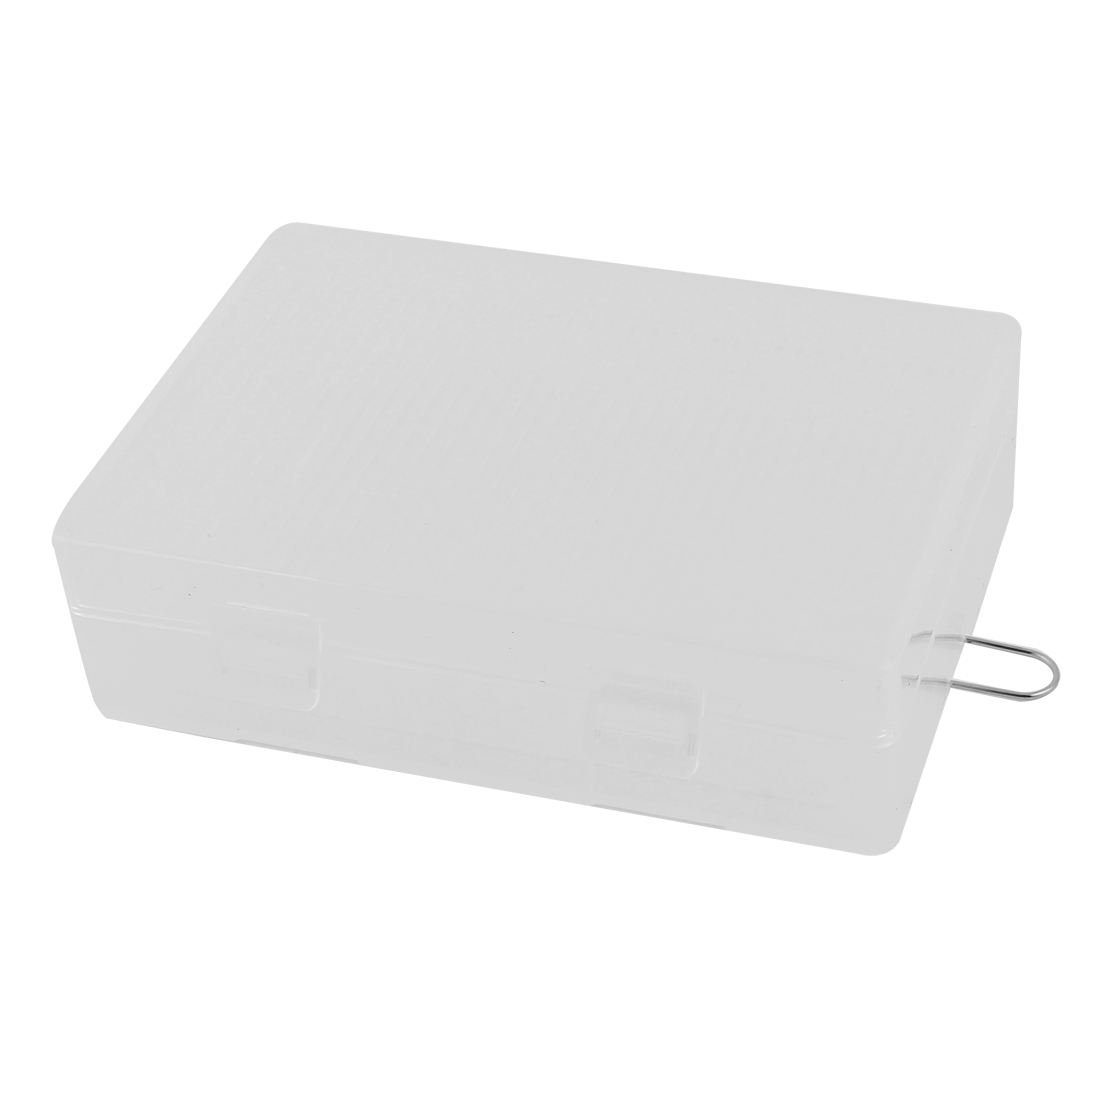 Hard Plastic Case Holder Storage Box Container for 4 x 26650 Battery